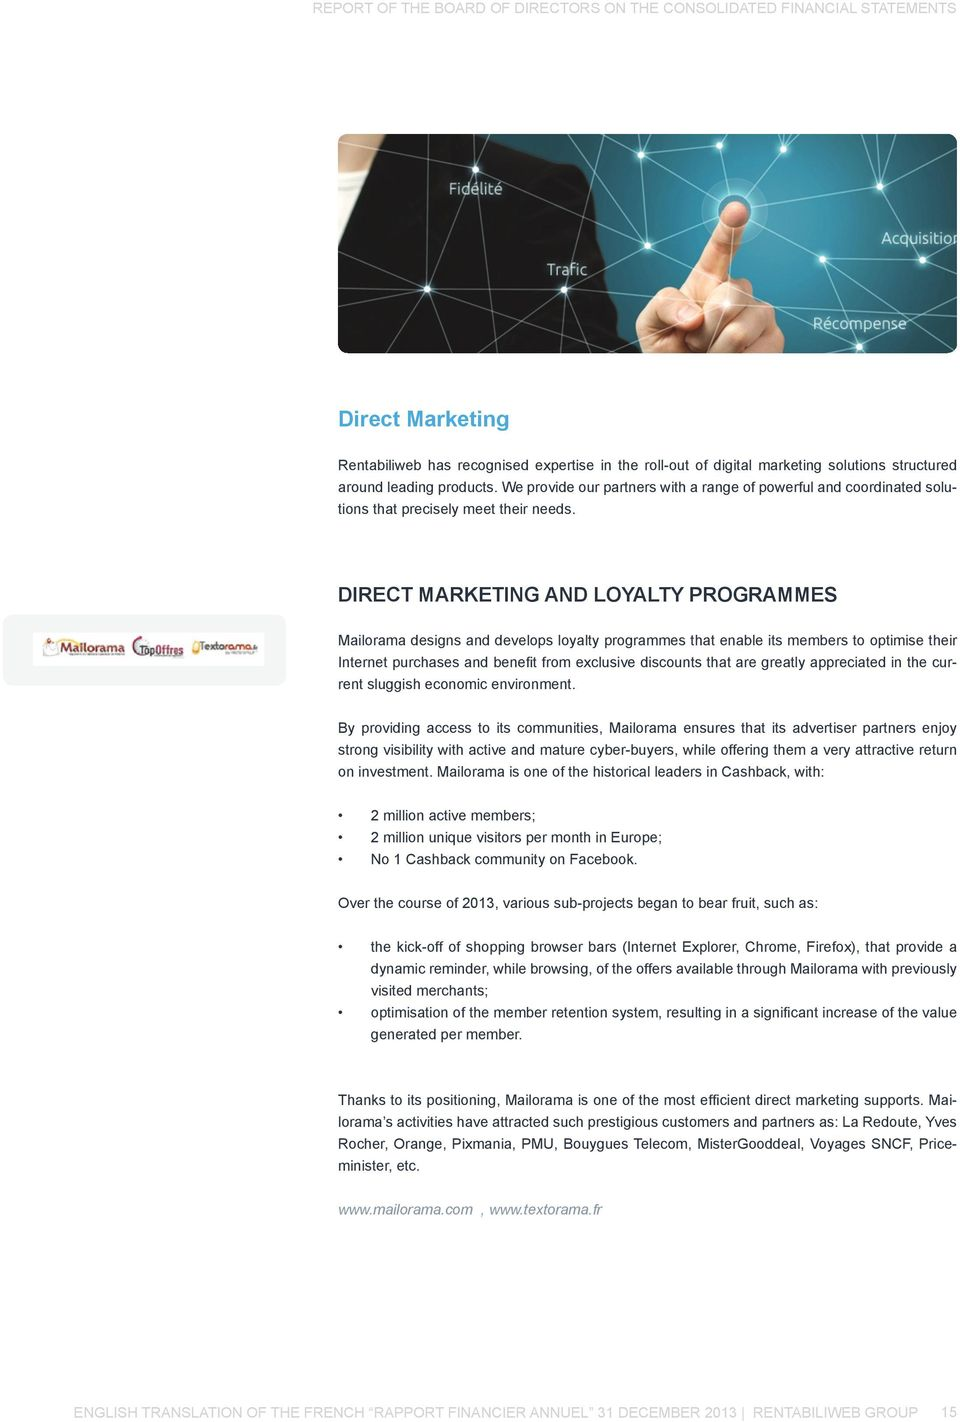 DIRECT MARKETING AND LOYALTY PROGRAMMES Mailorama designs and develops loyalty programmes that enable its members to optimise their Internet purchases and benefit from exclusive discounts that are